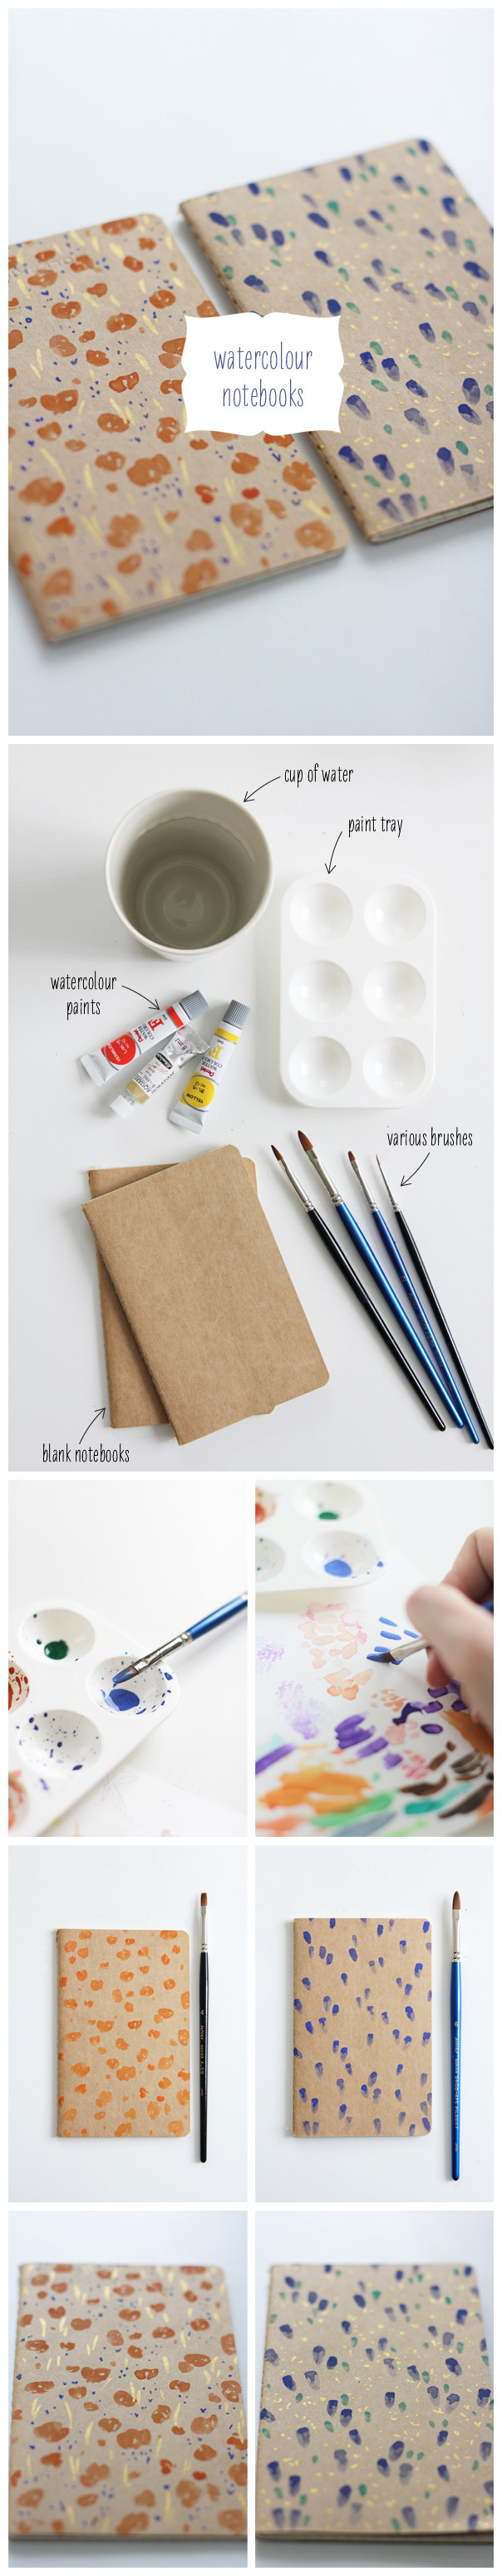 Watercolor book covers - Book Covers To Buy Their Own Simple Kraft Paper Cover Of The Book And Watercolor